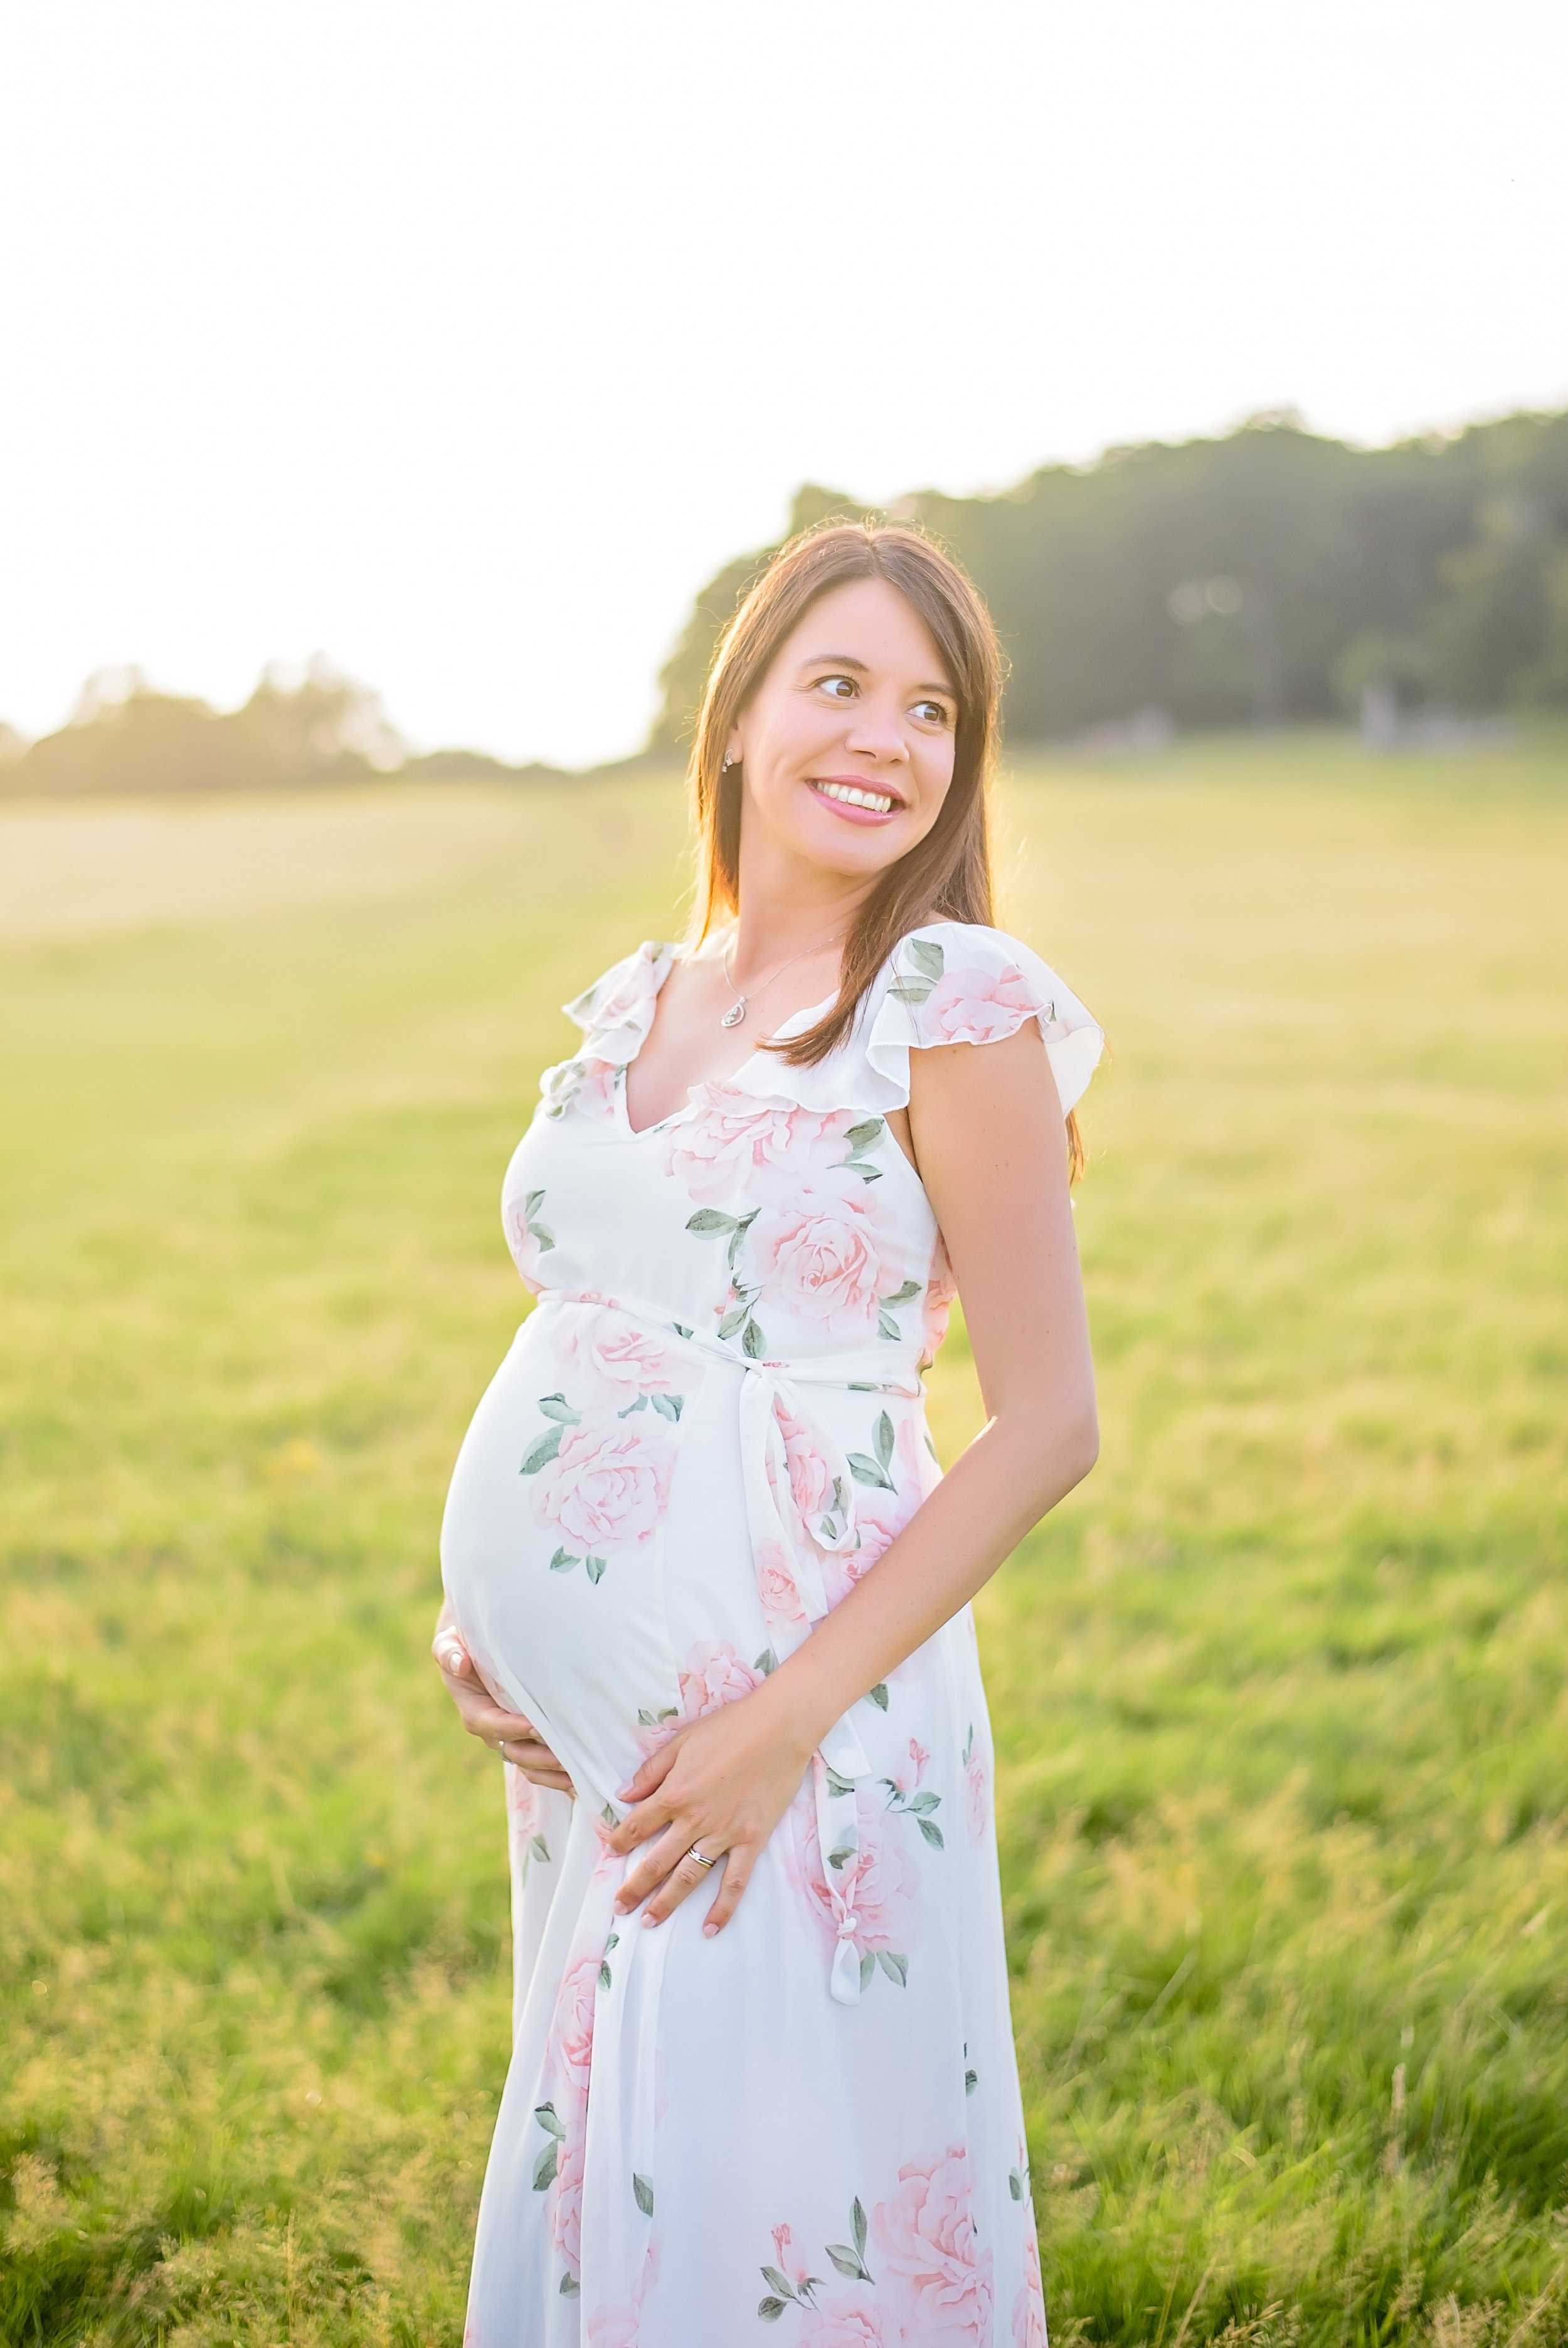 Pregnancy photography in nature